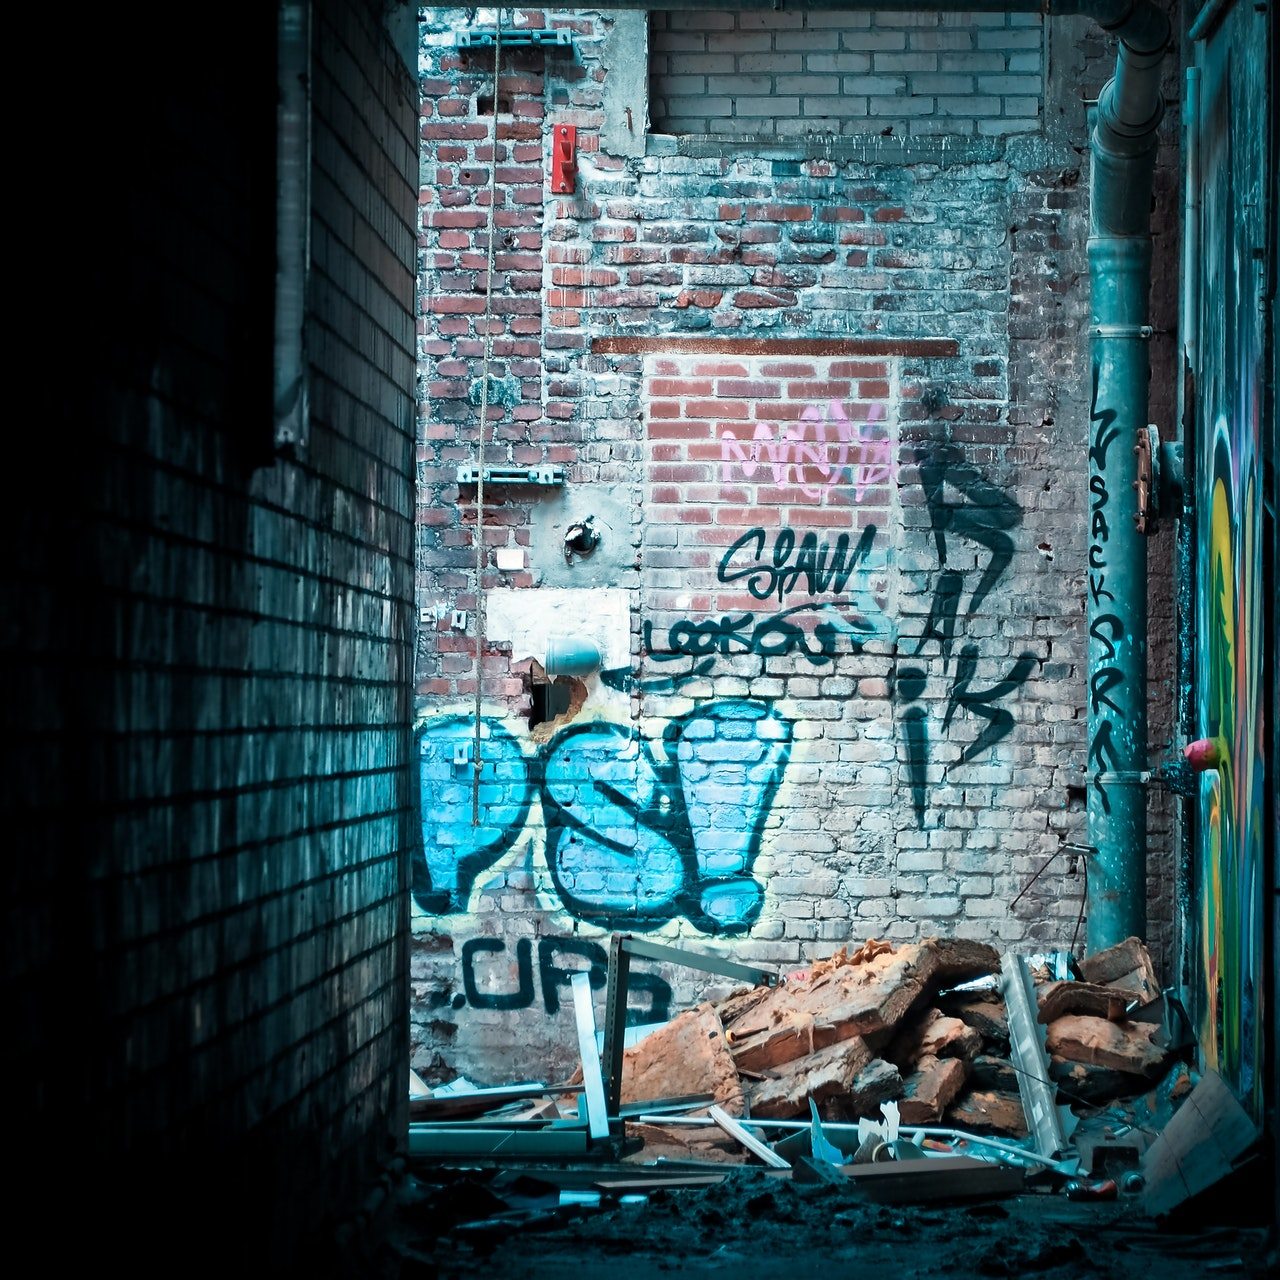 graffiti wall in alley